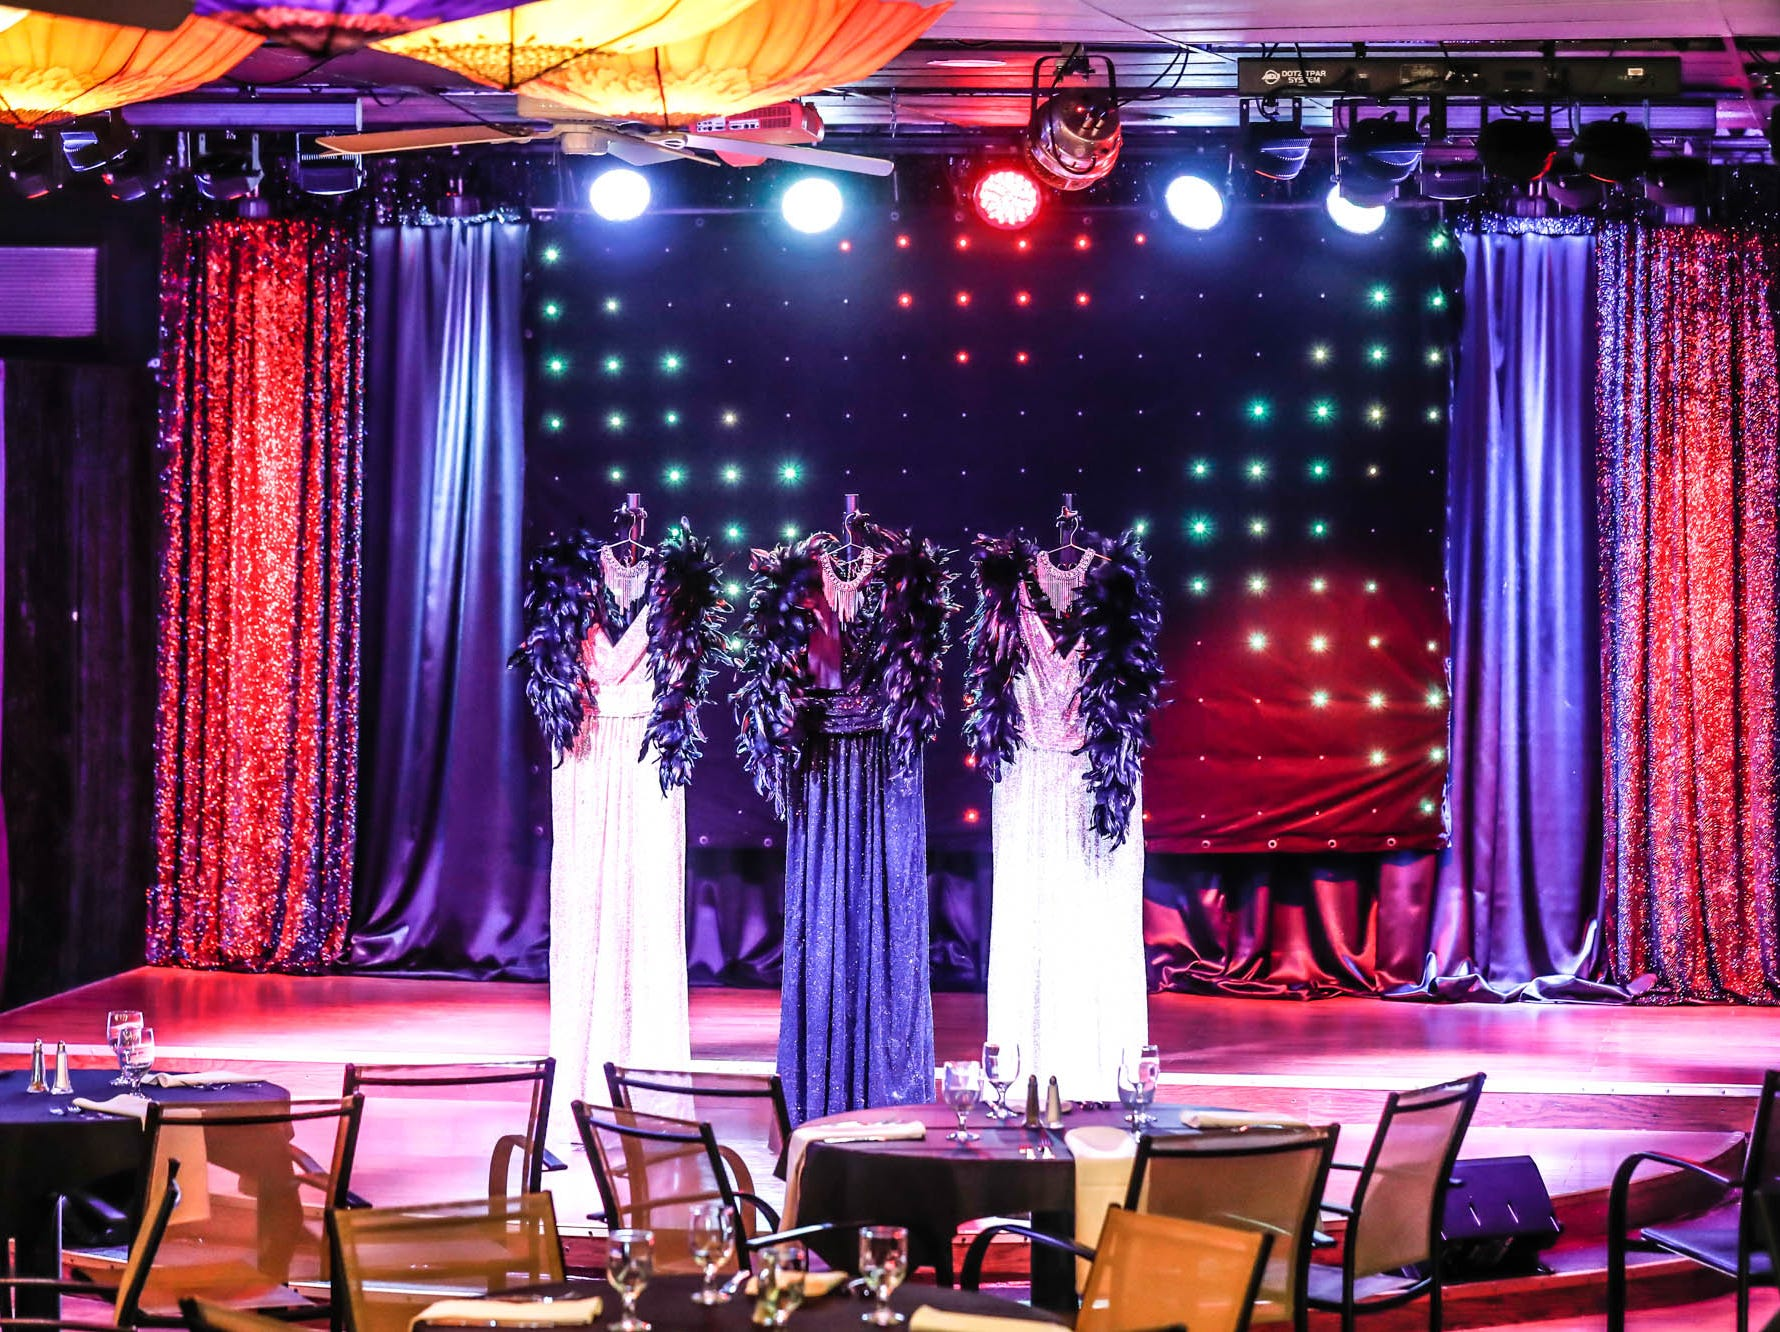 Mood and stage lighting set the scene at Stage To Screen's Catered Cabaret Theatre, 350 S. Madison Ave., Greenwood Ind. on Thursday, Jan. 17, 2019. The theatre was originally named Stage To Screen Studios, but has since evolved.